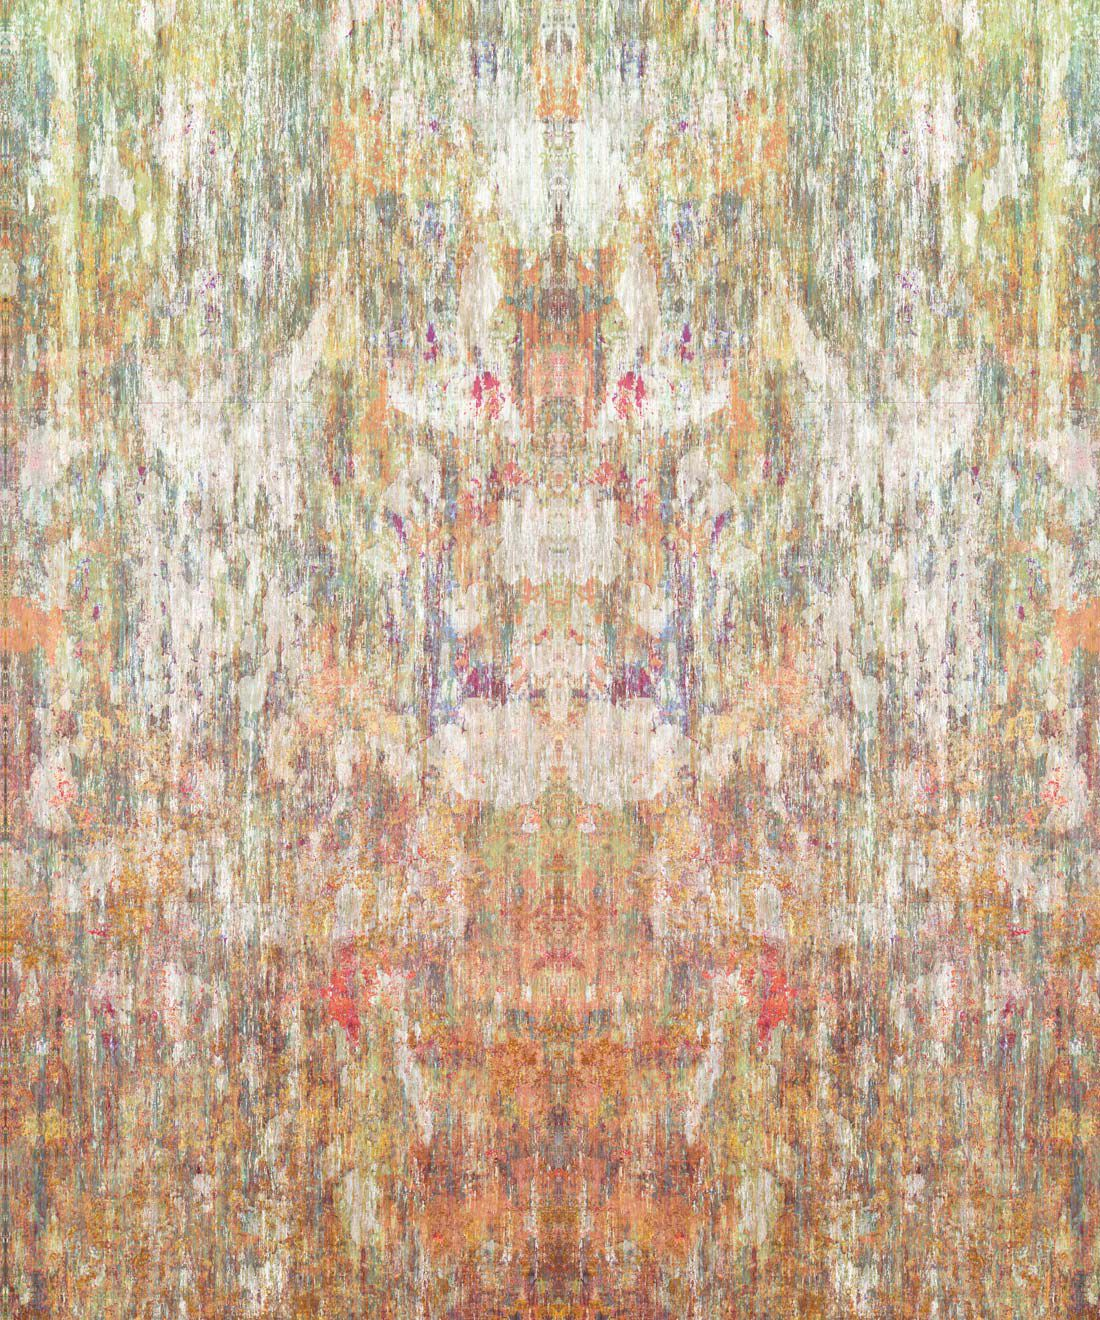 Patina Wallpaper by Simcox • Color Earth • Abstract Wallpaper • swatch